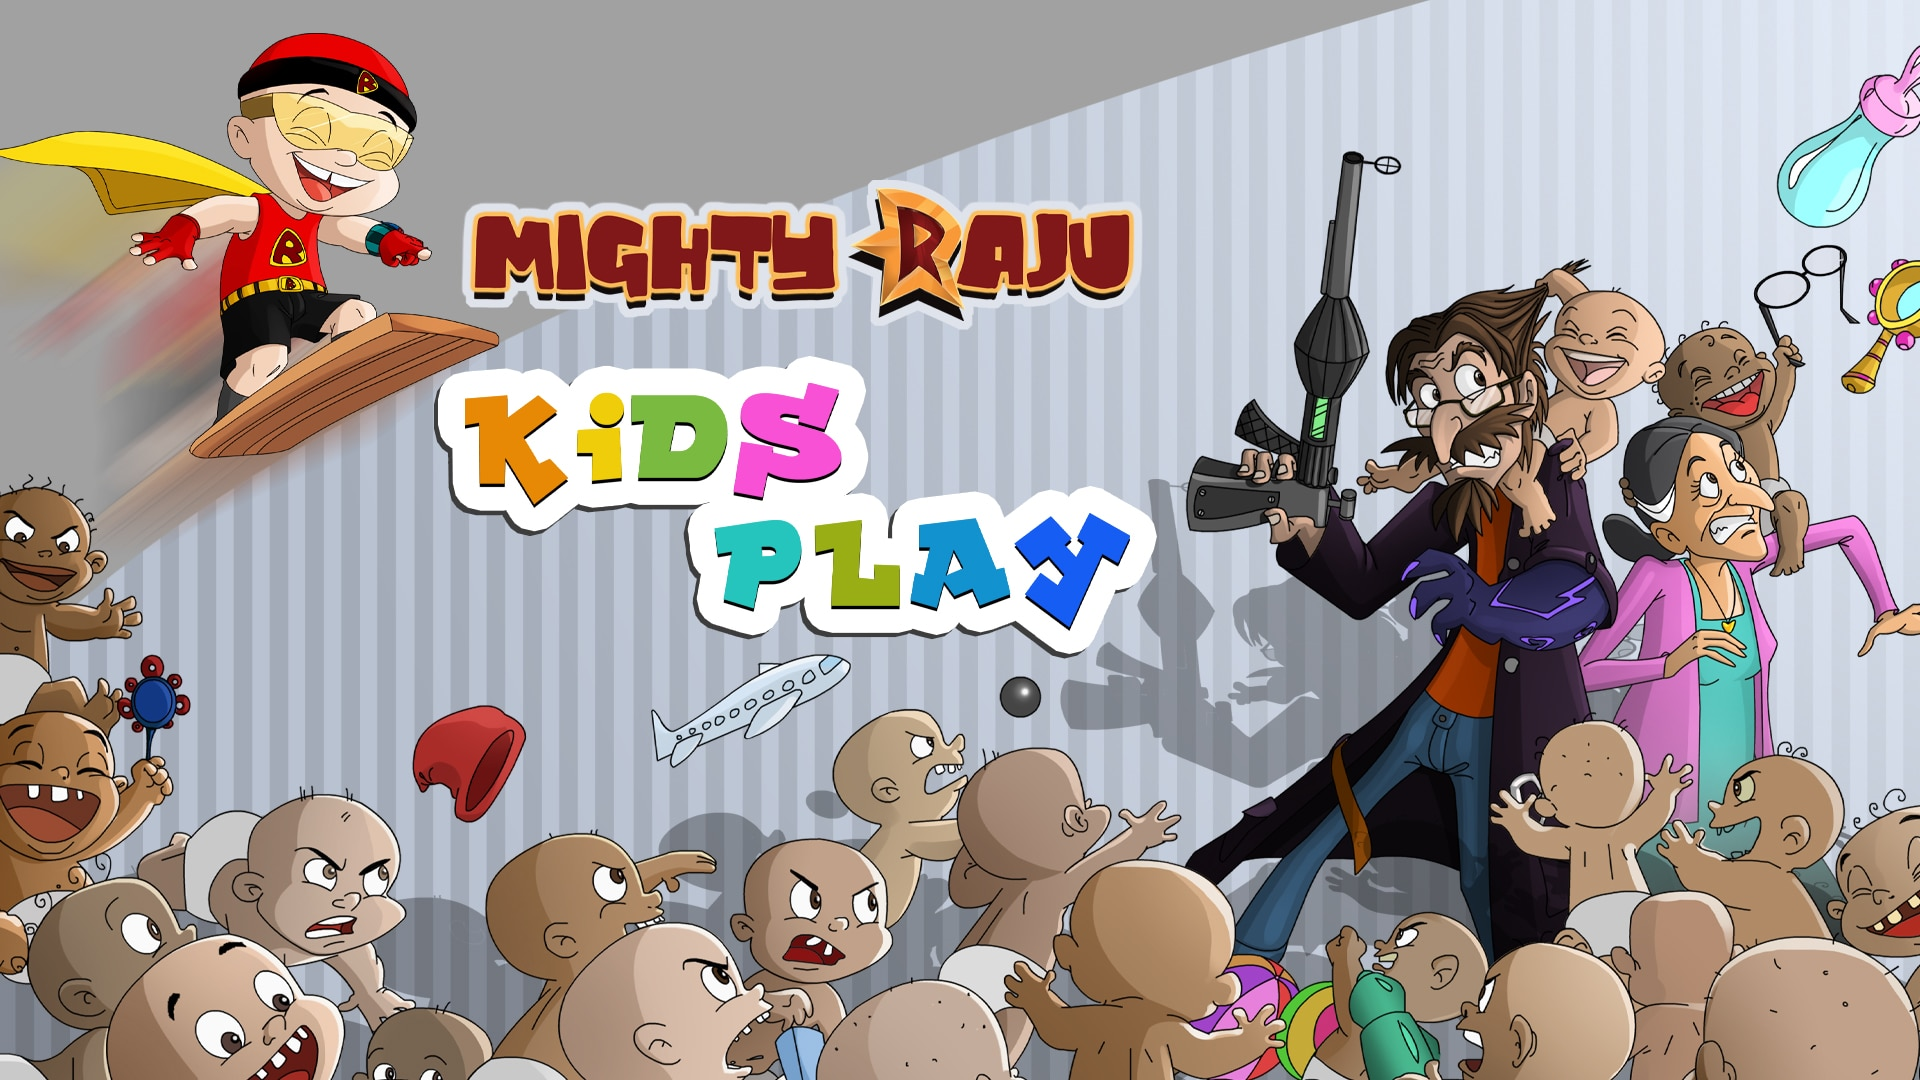 Mighty Raju Kids Play Full Movie In Telugu